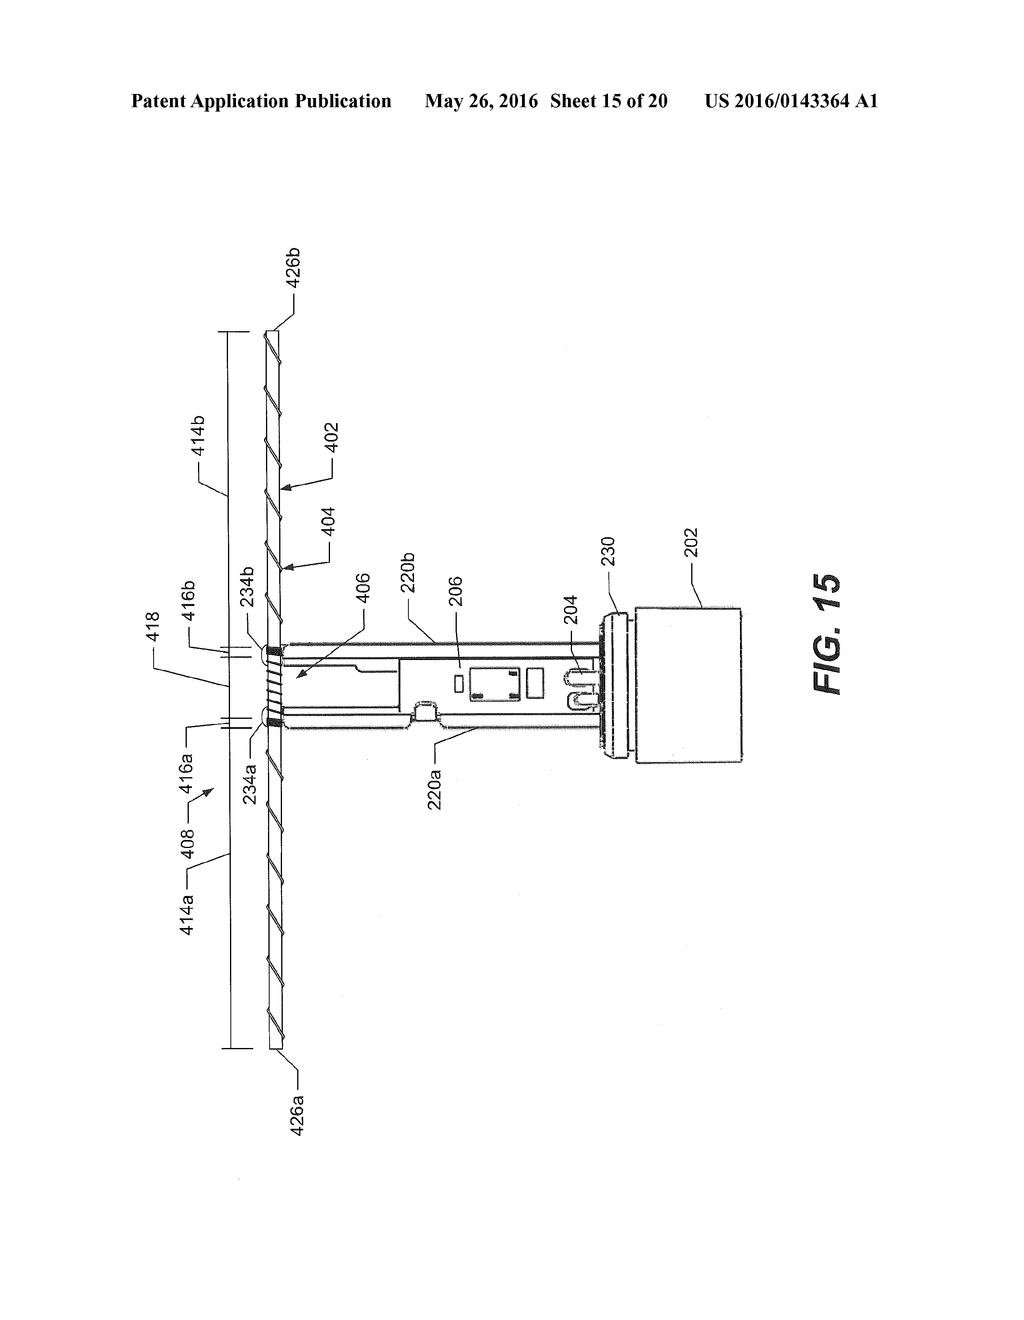 atomizer for an aerosol delivery device formed from a continuously